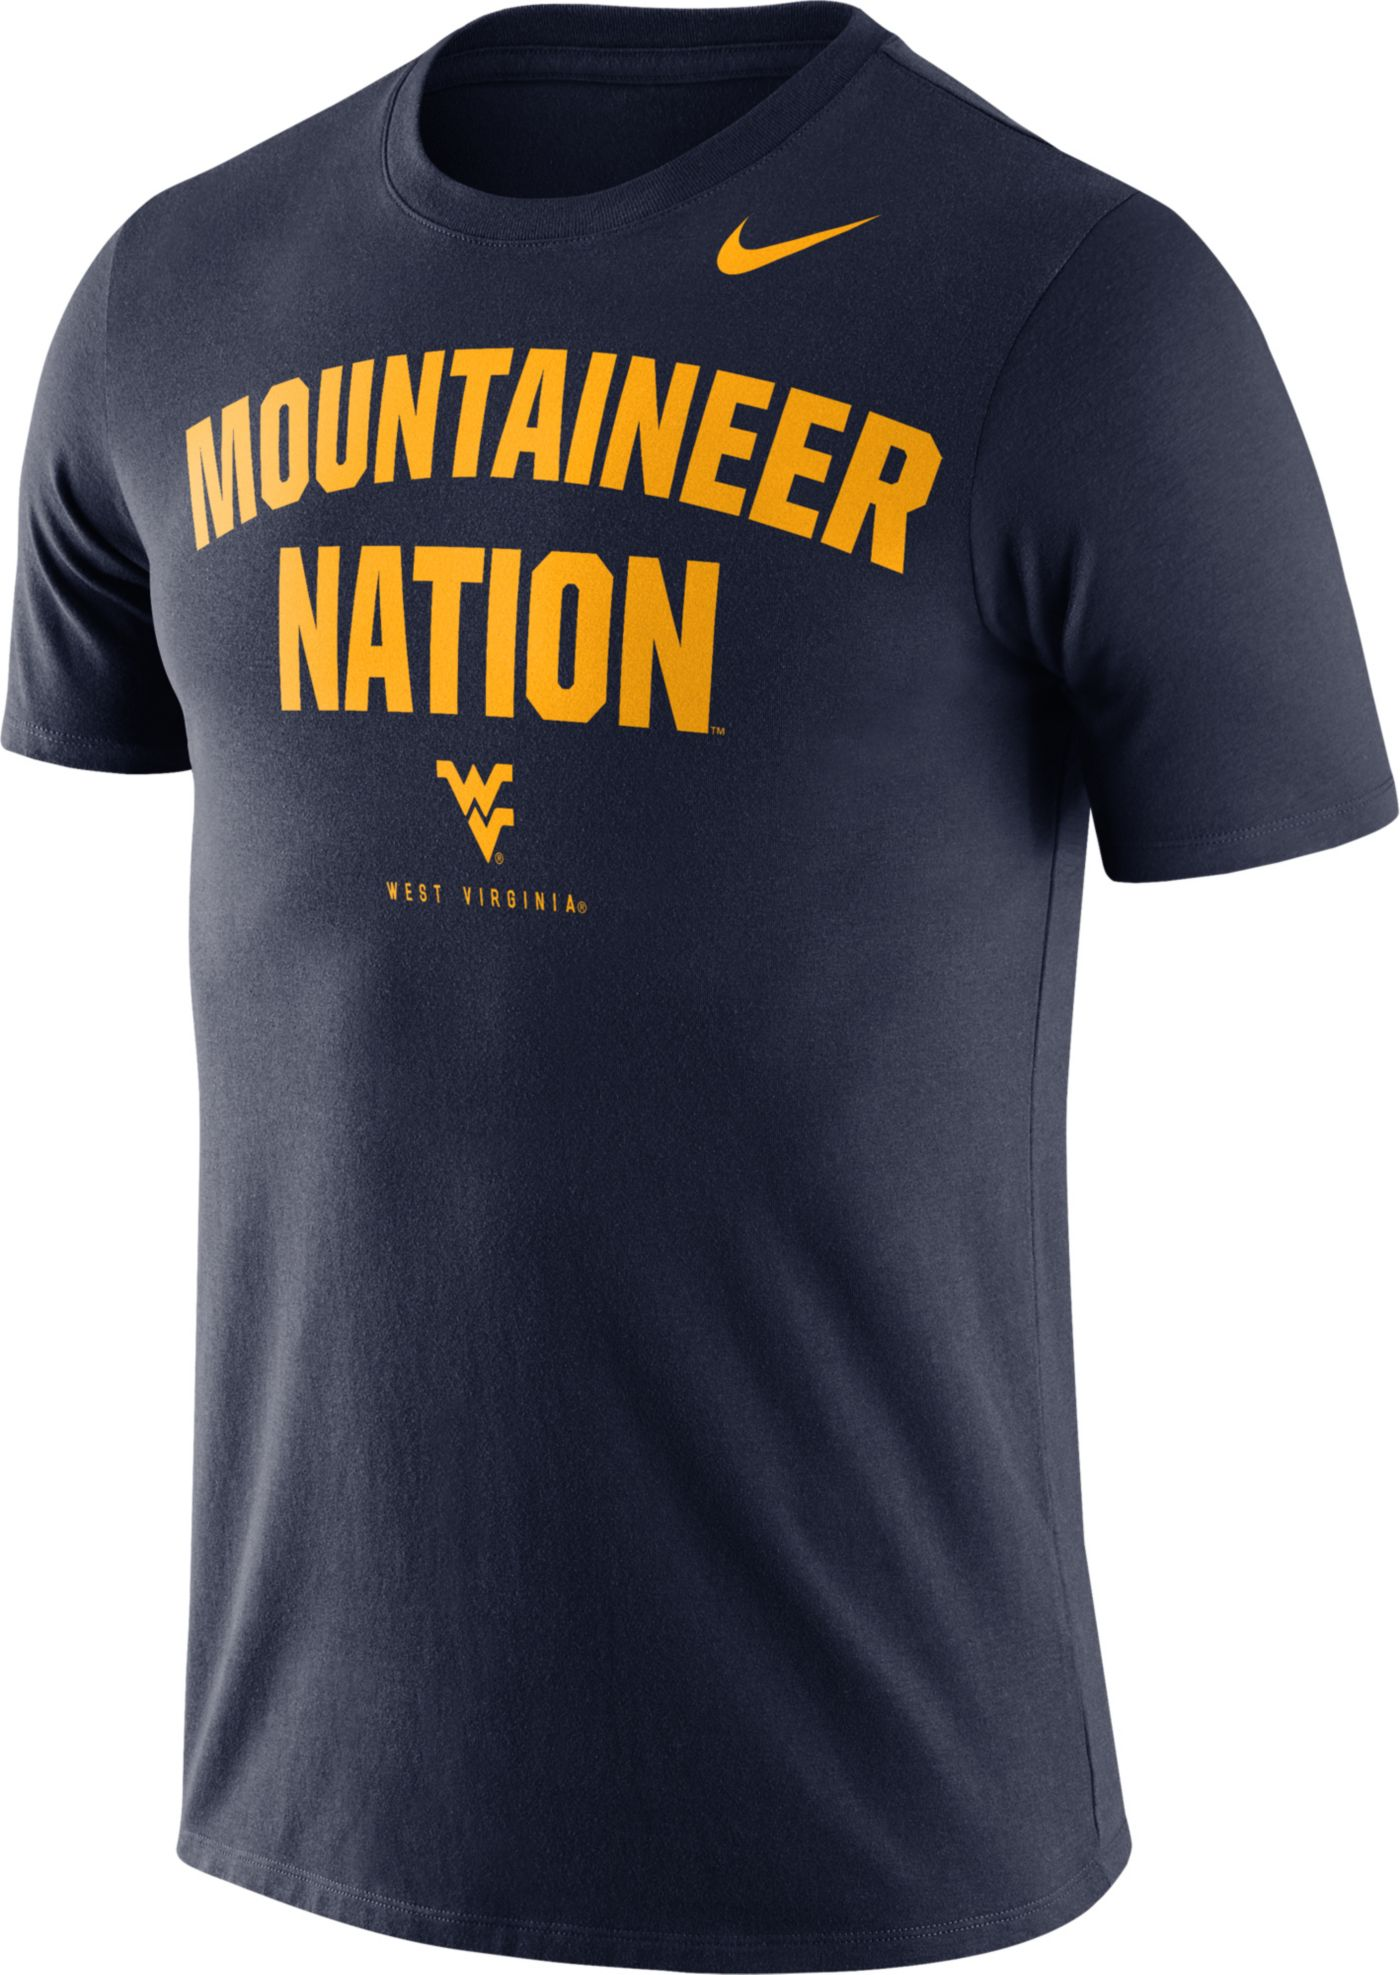 Nike Men's West Virginia Mountaineers Blue Dri-FIT Phrase T-Shirt